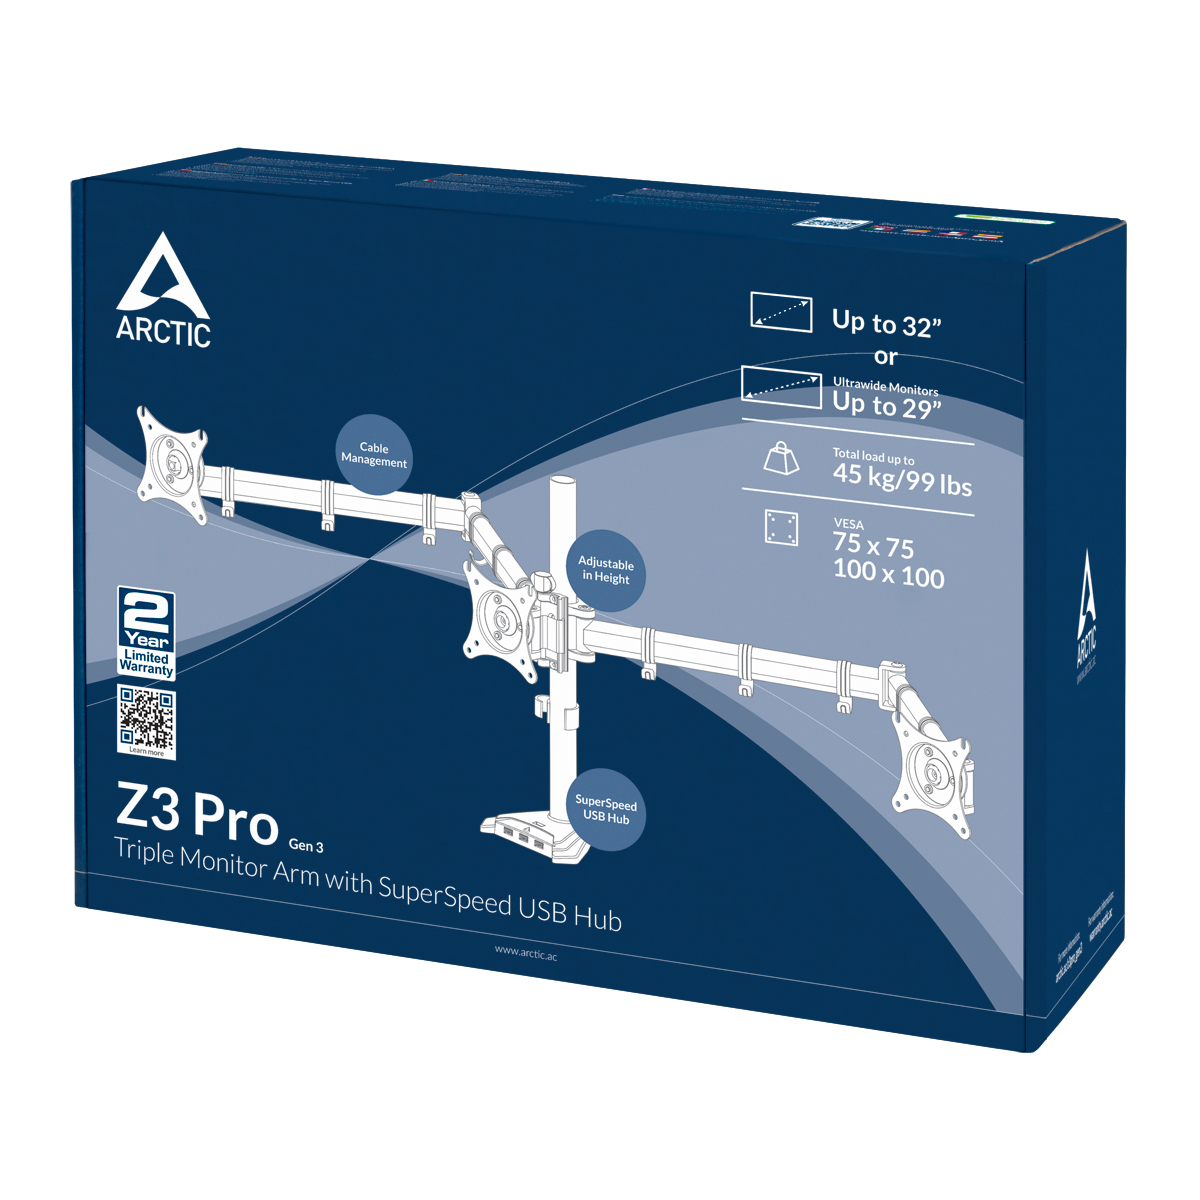 Desk Mount Triple Monitor Arm with SuperSpeed USB Hub ARCTIC Z3 Pro (Gen 3) Packaging Front View